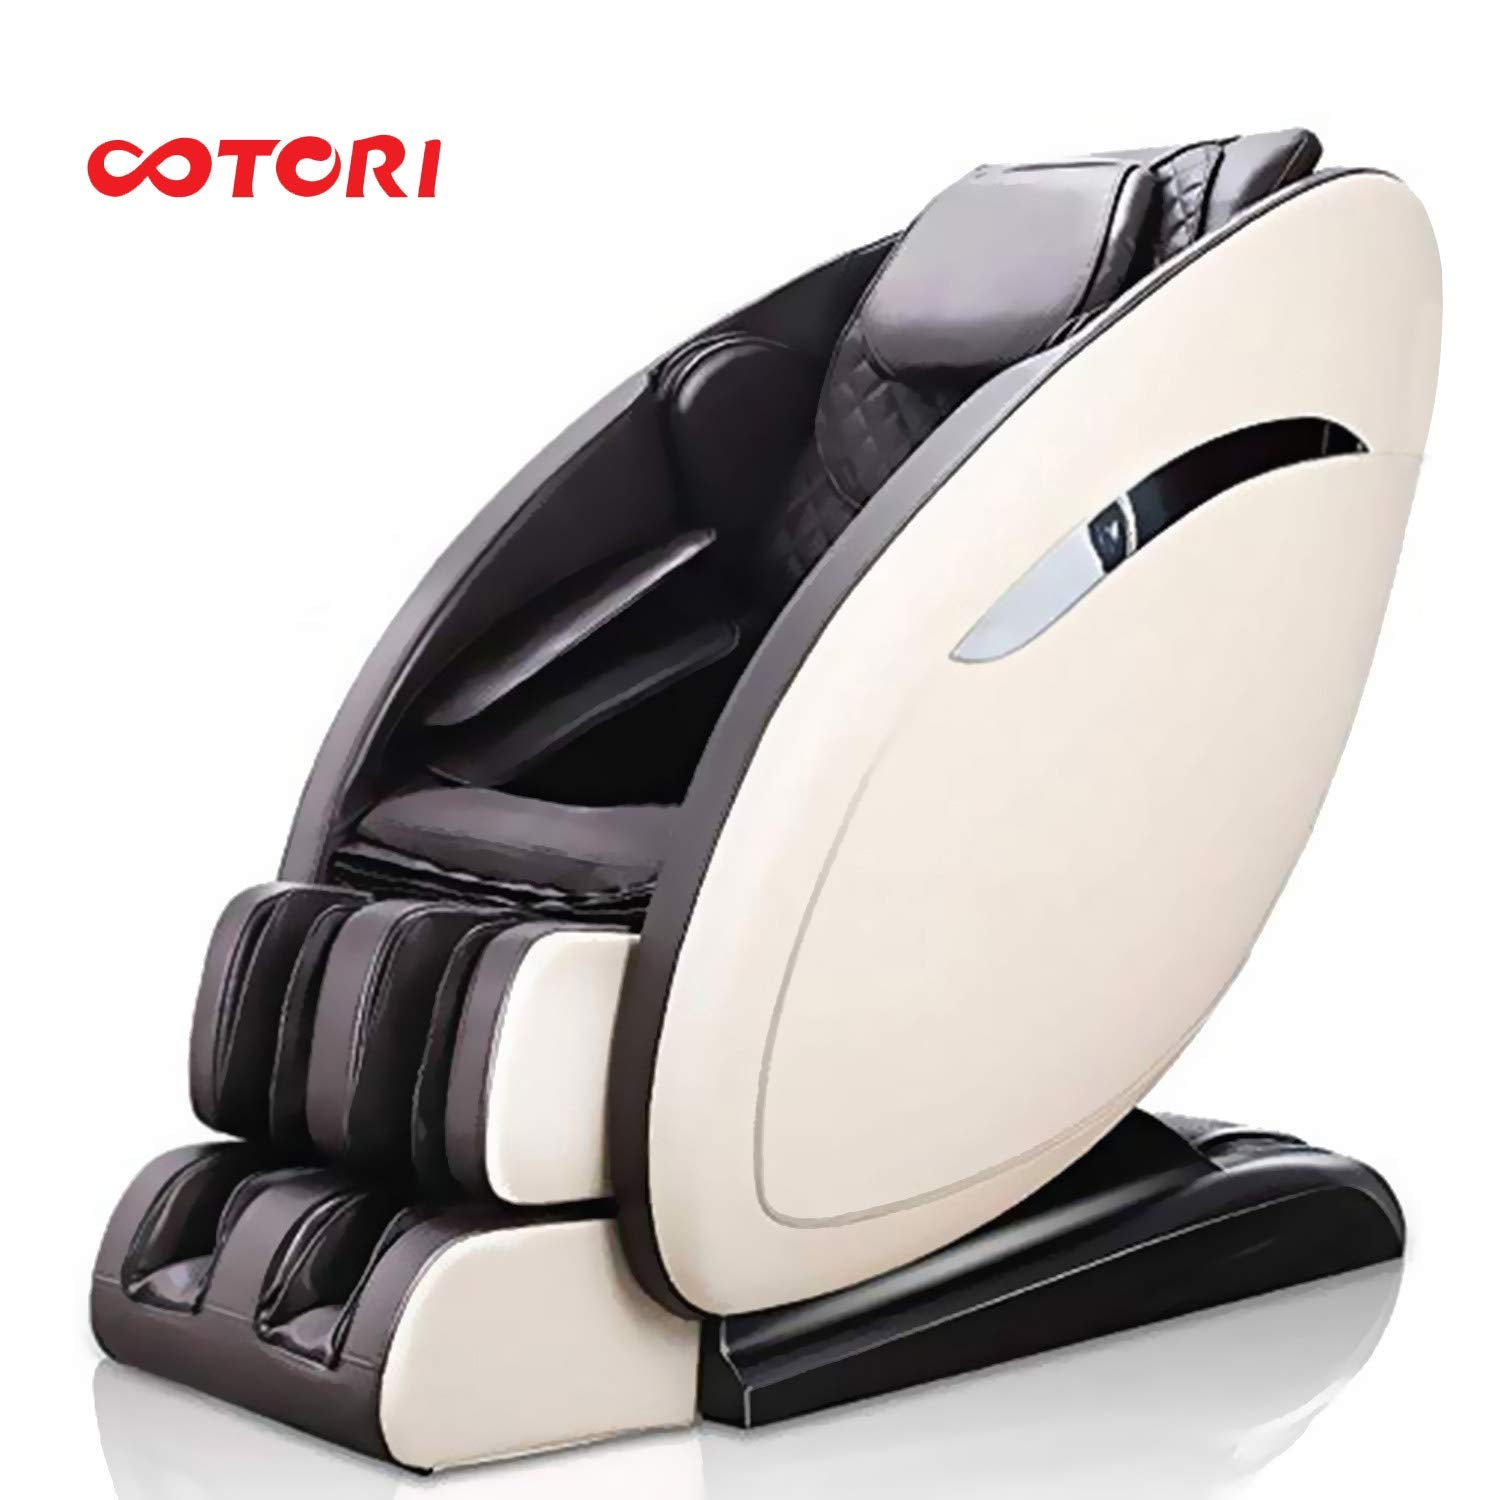 Ootori S5 Massage Chair